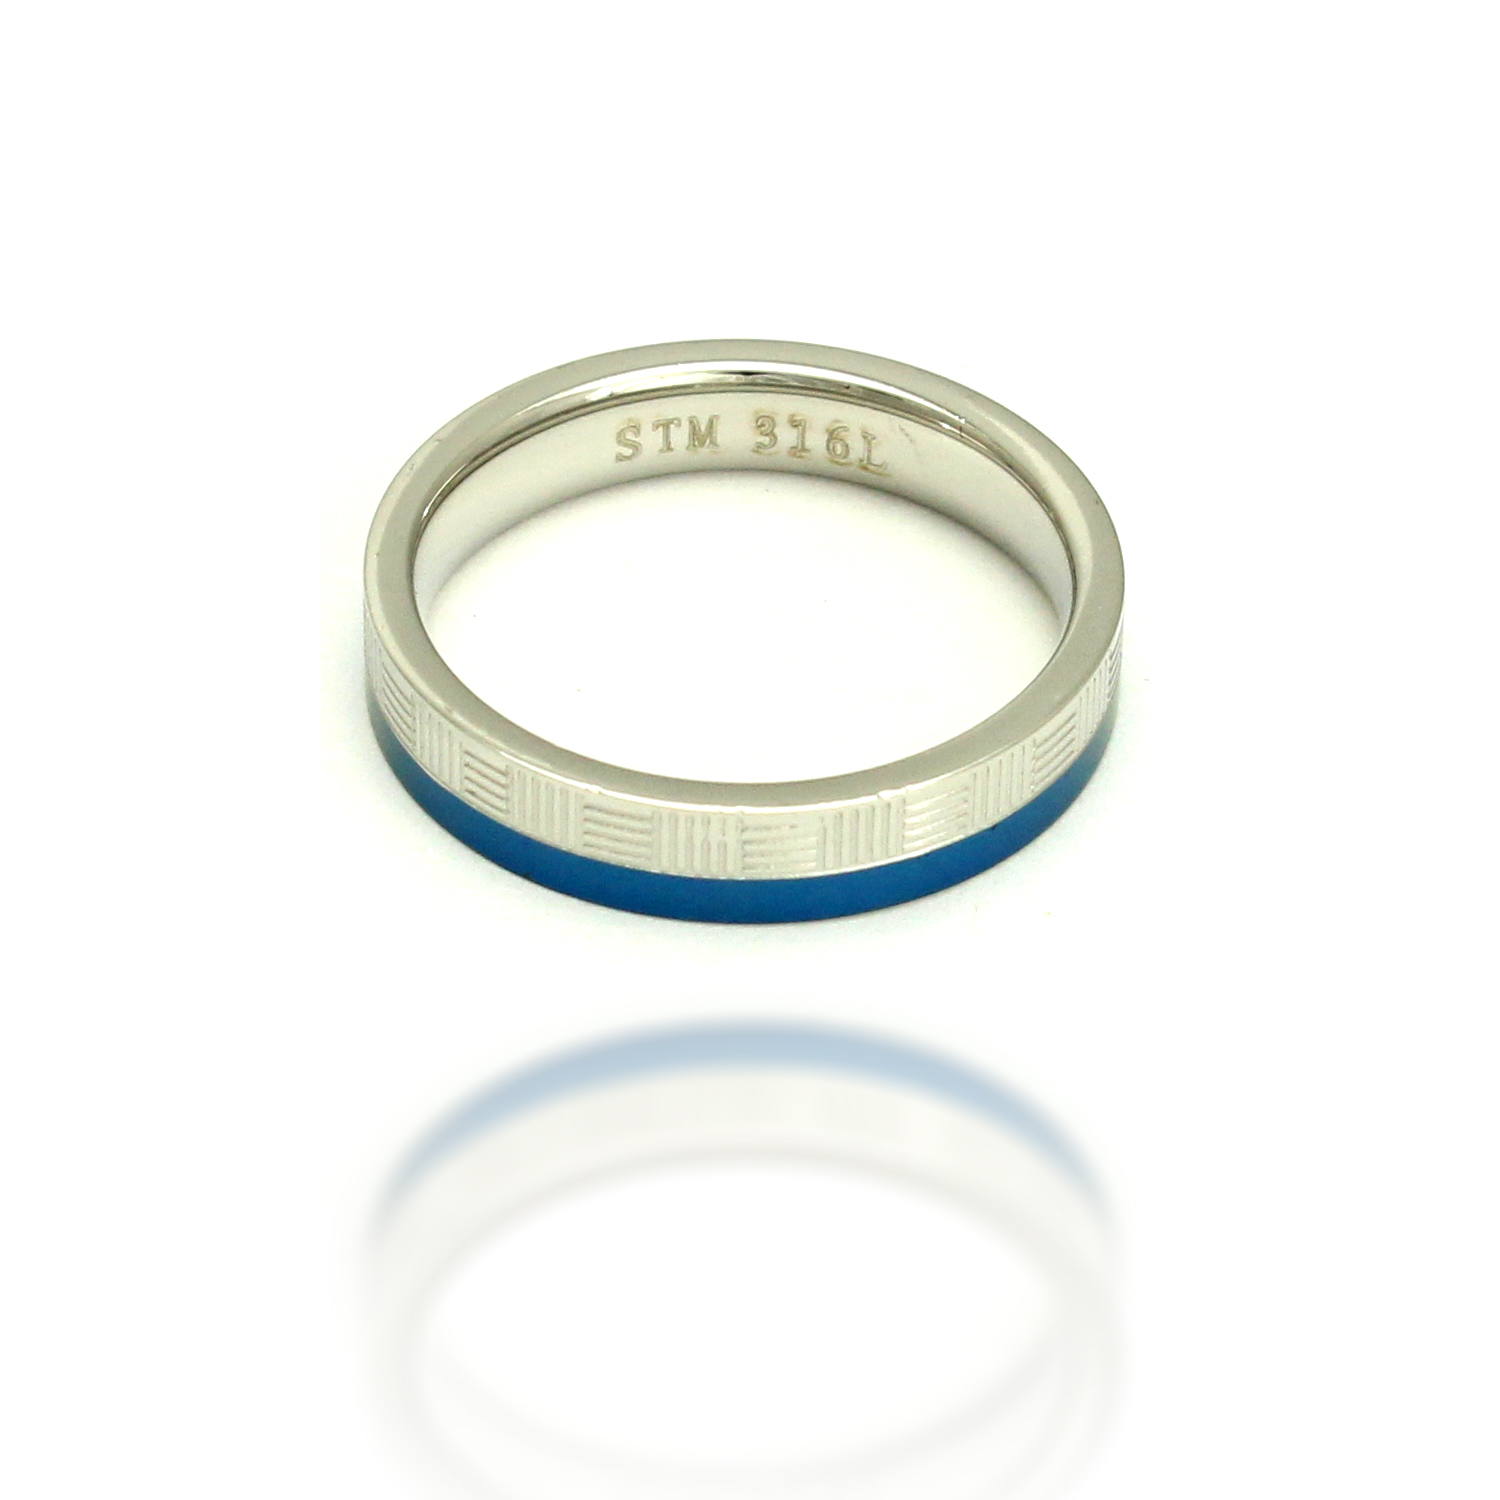 316L Stainless Steel and Space Blue Mat Design Fashion Ring, Size 6.5